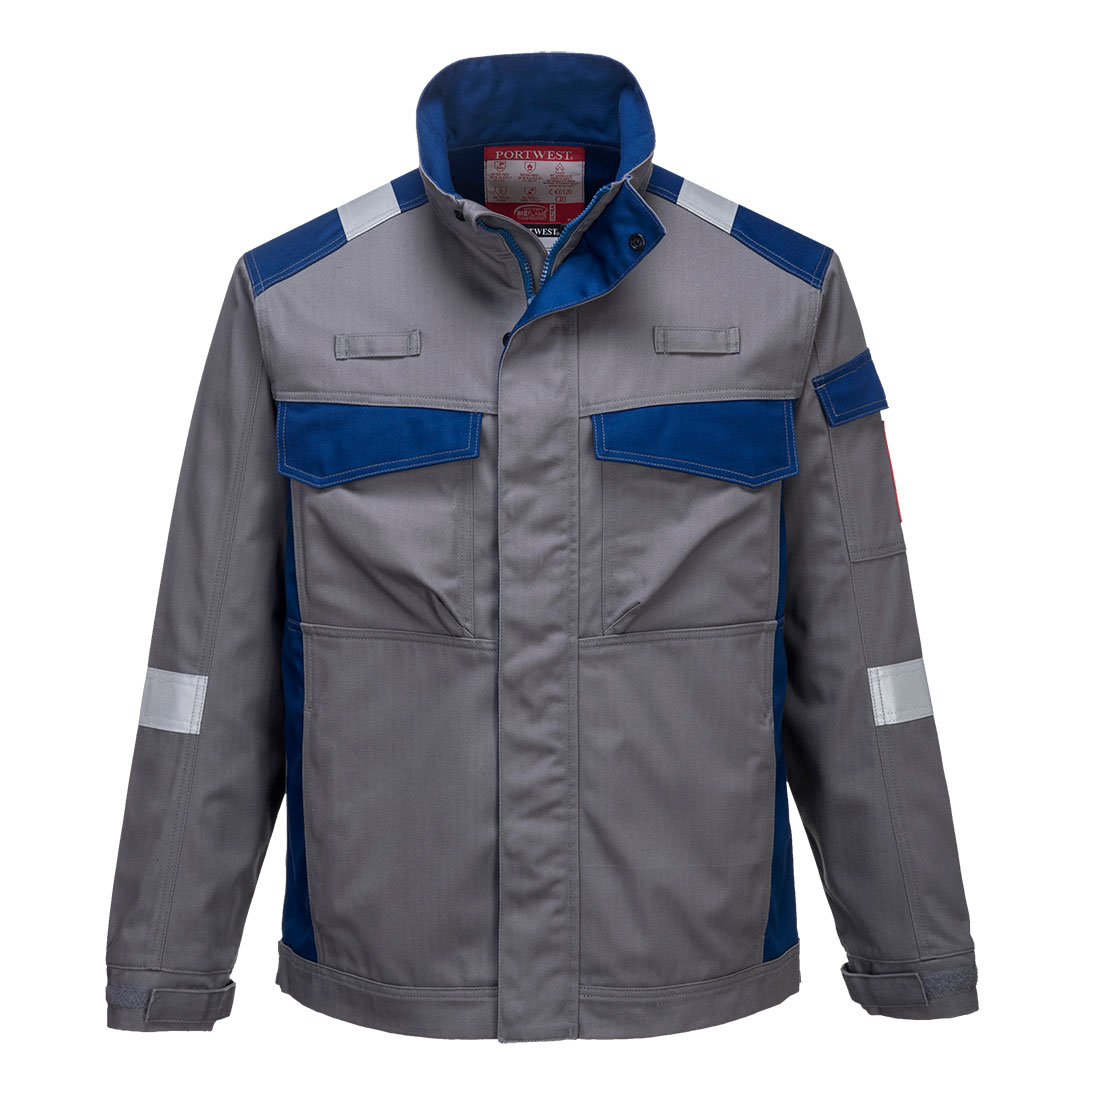 Portwest Bizflame Ultra Two-Tone Jacket - Grey Front